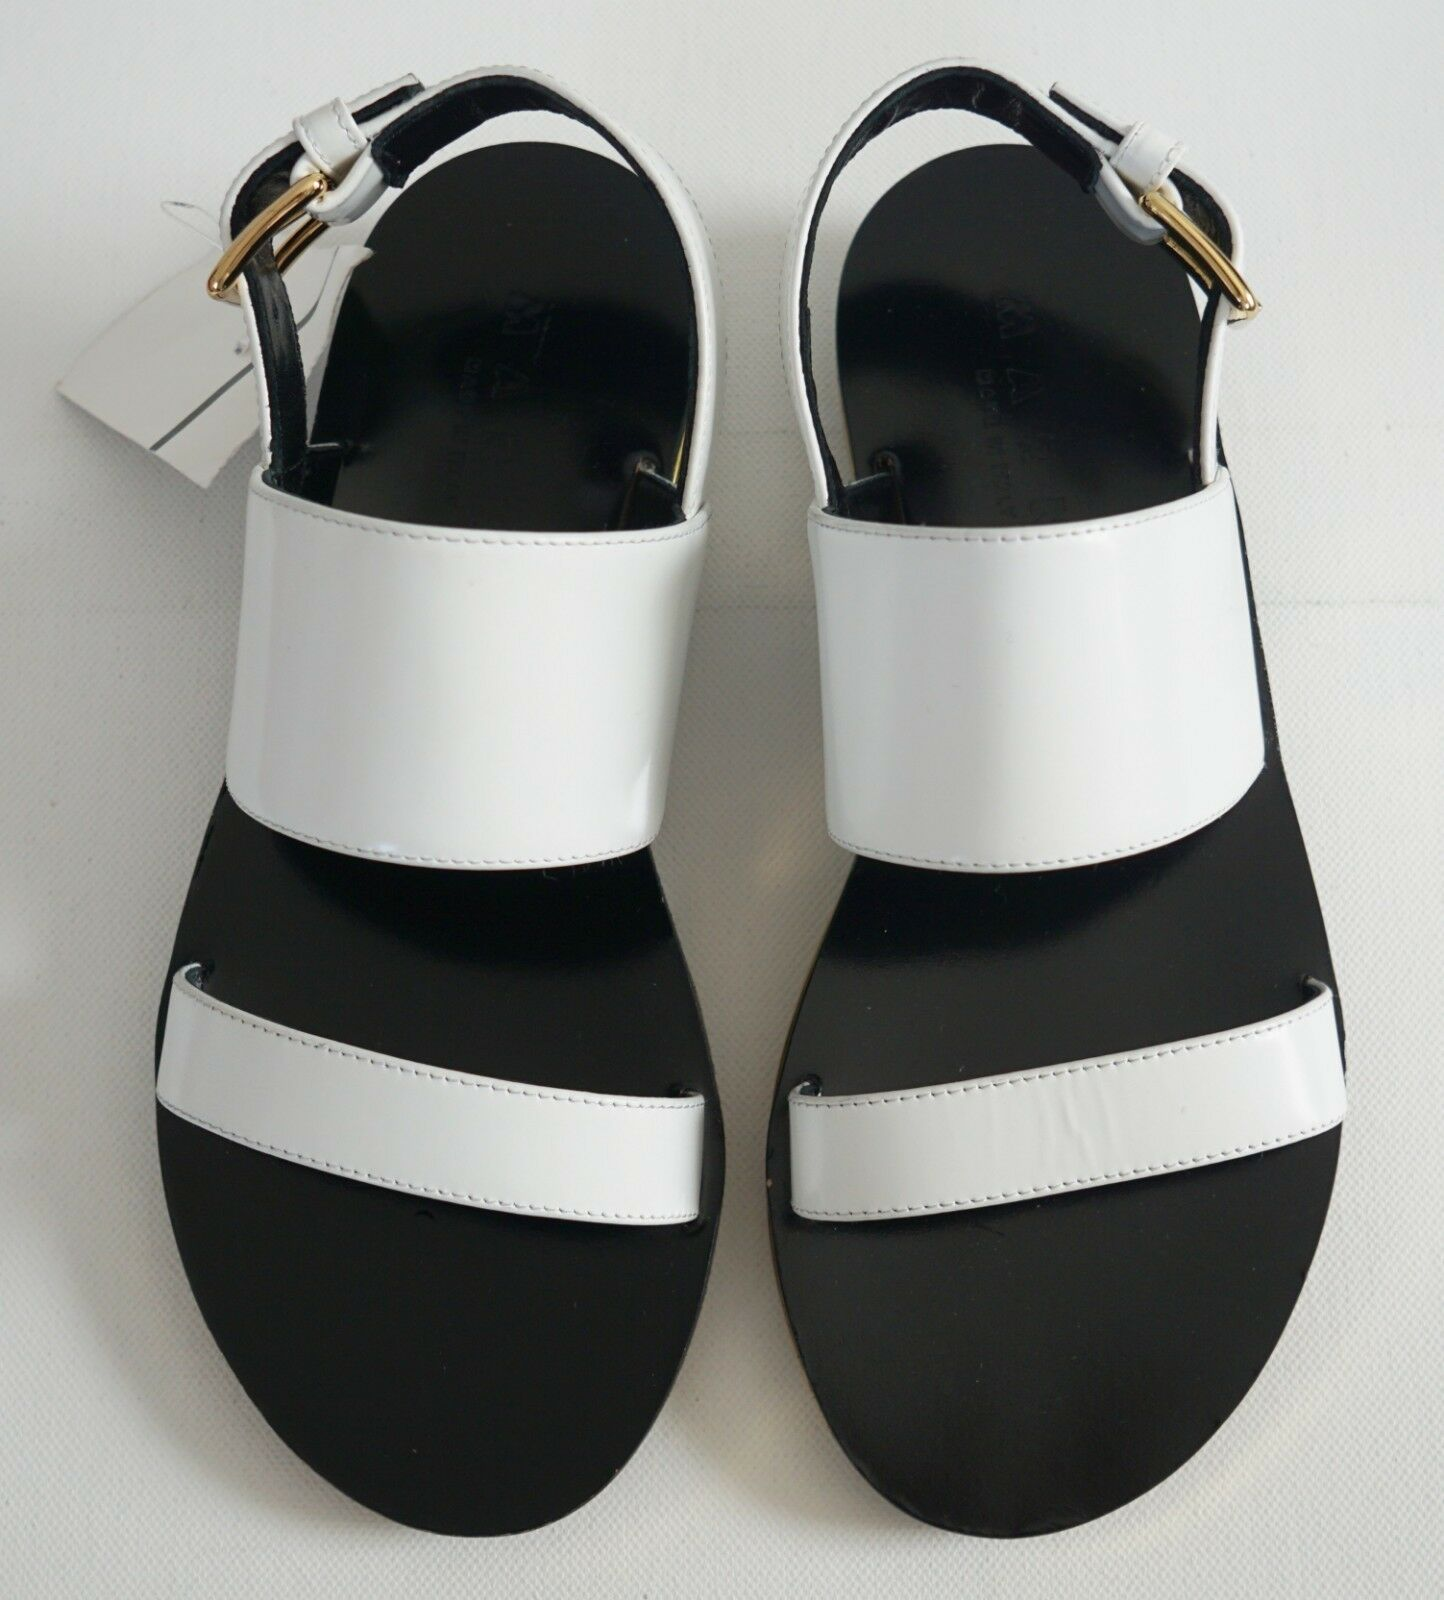 New Authentic MARNI White Leather Slingback Flat Sandals shoes EUR-36 US-6